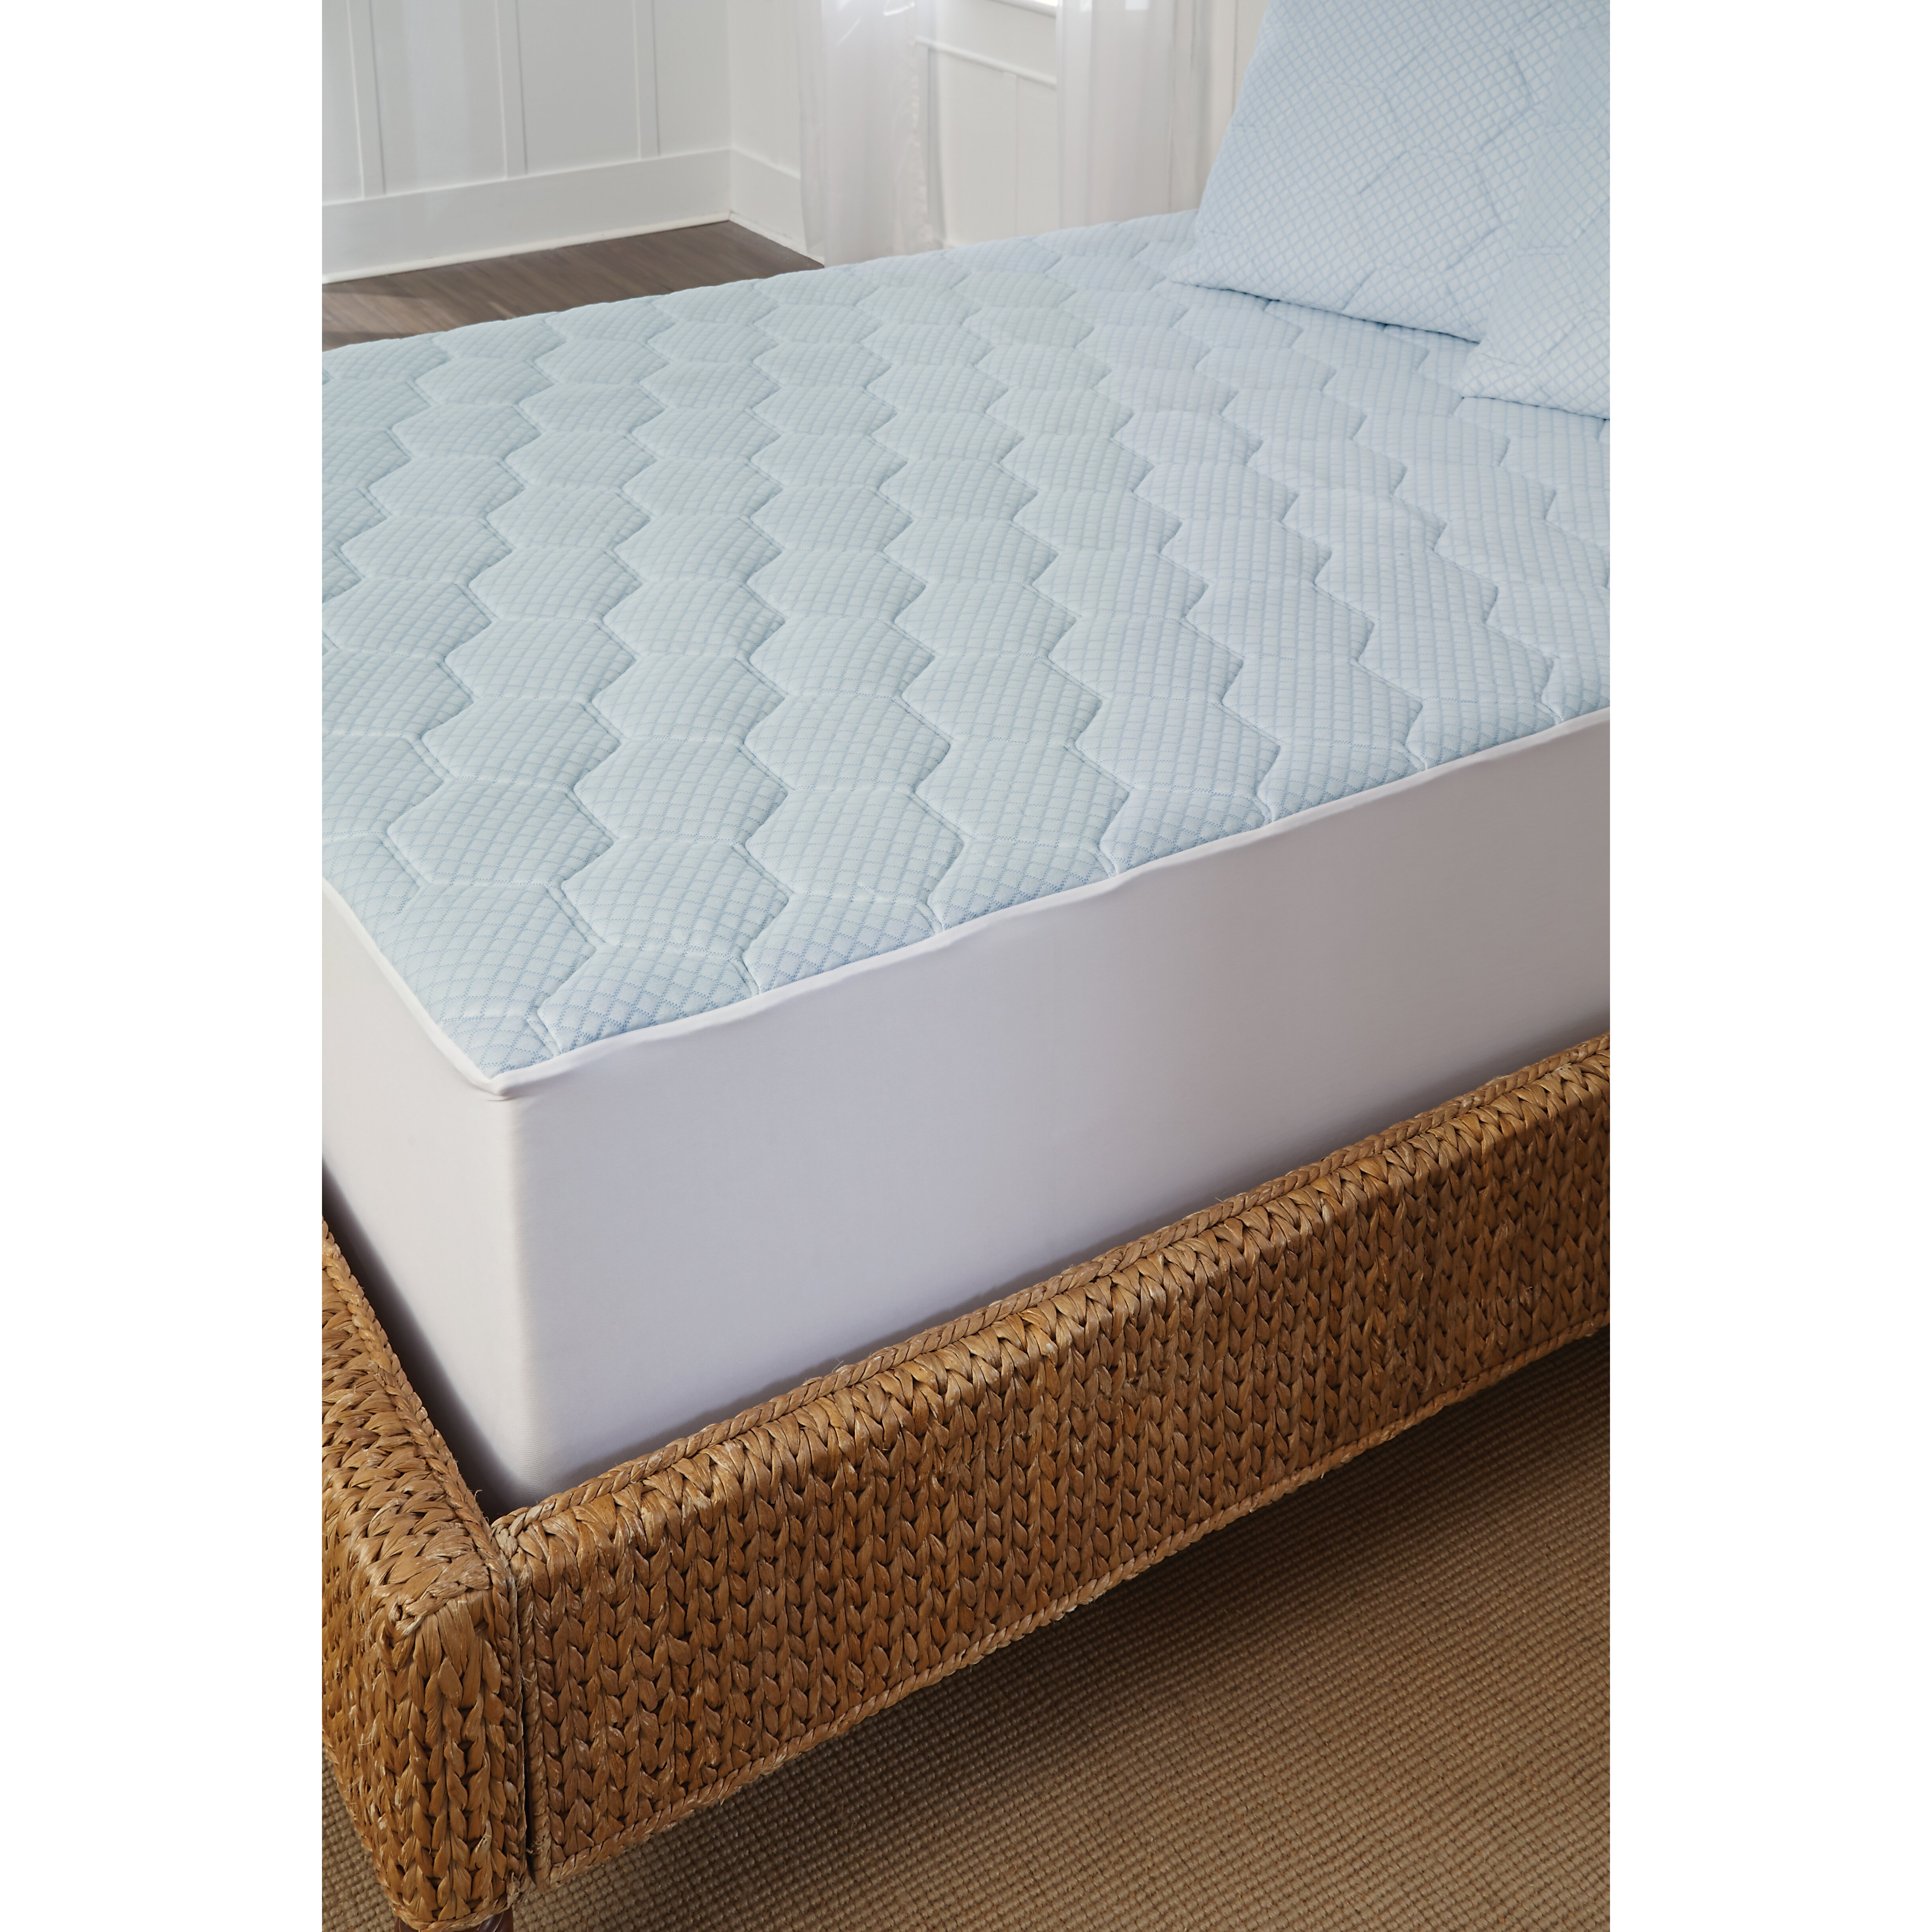 Cooling Mattress Pad Full Bed